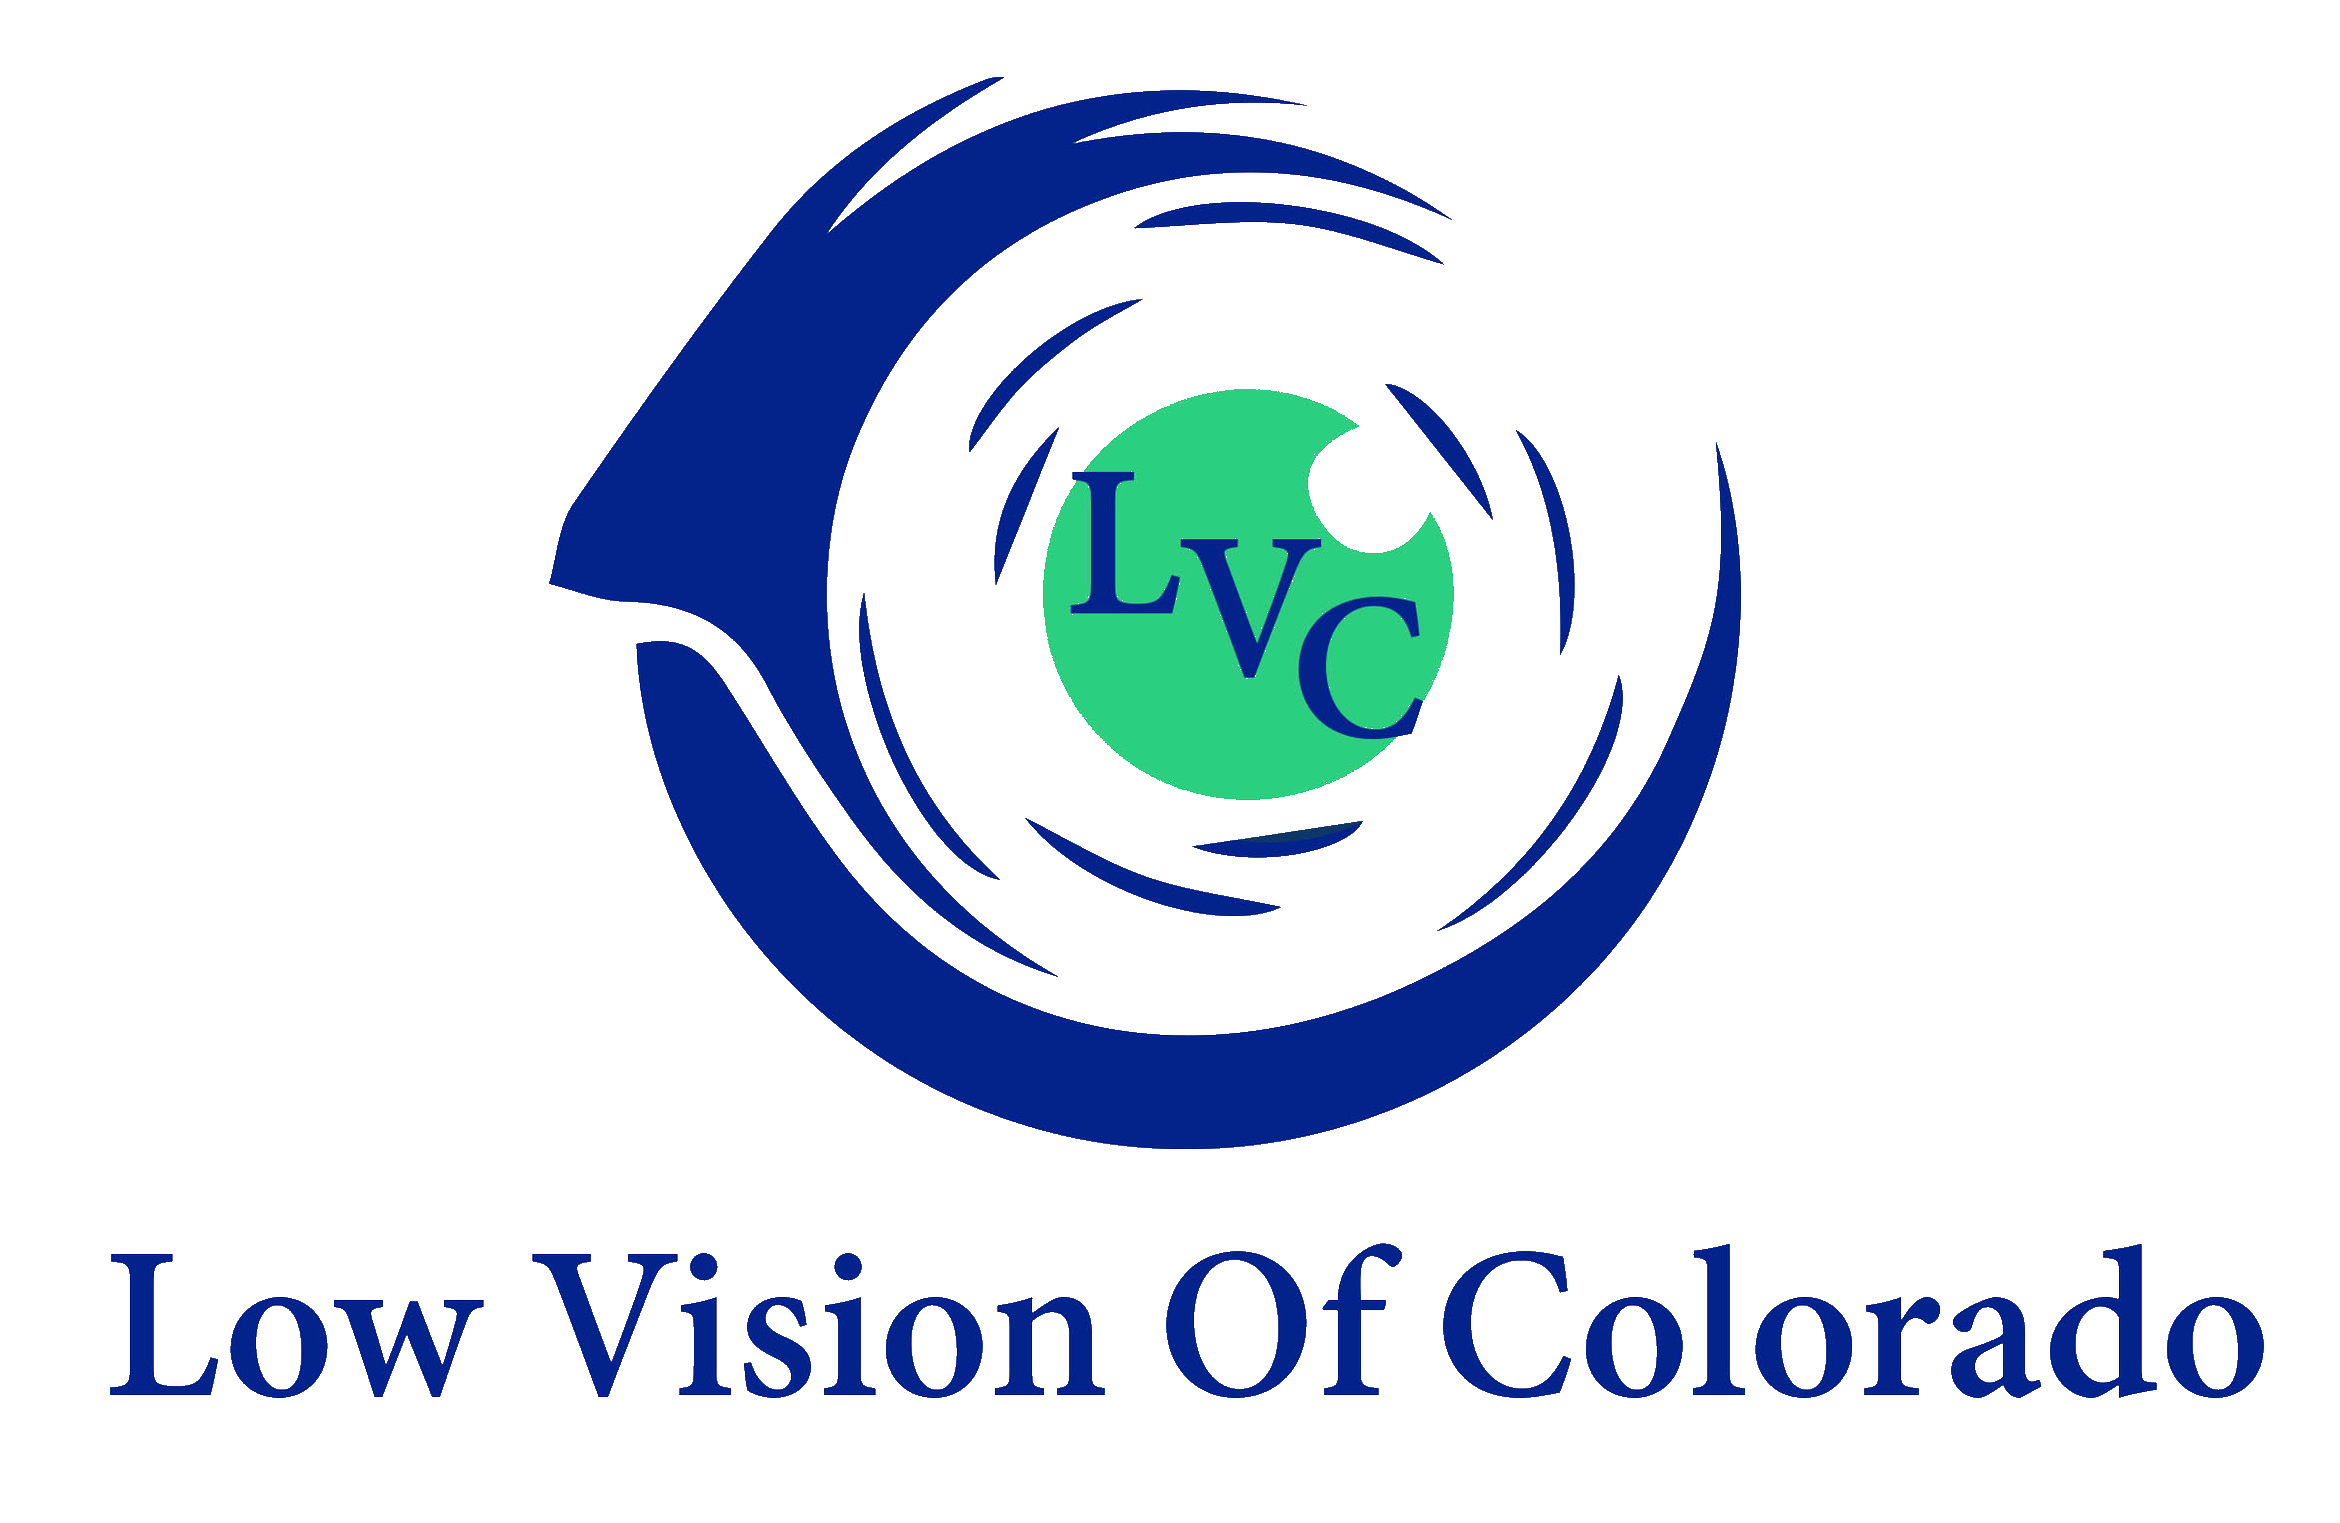 Low Vision Of Colorado